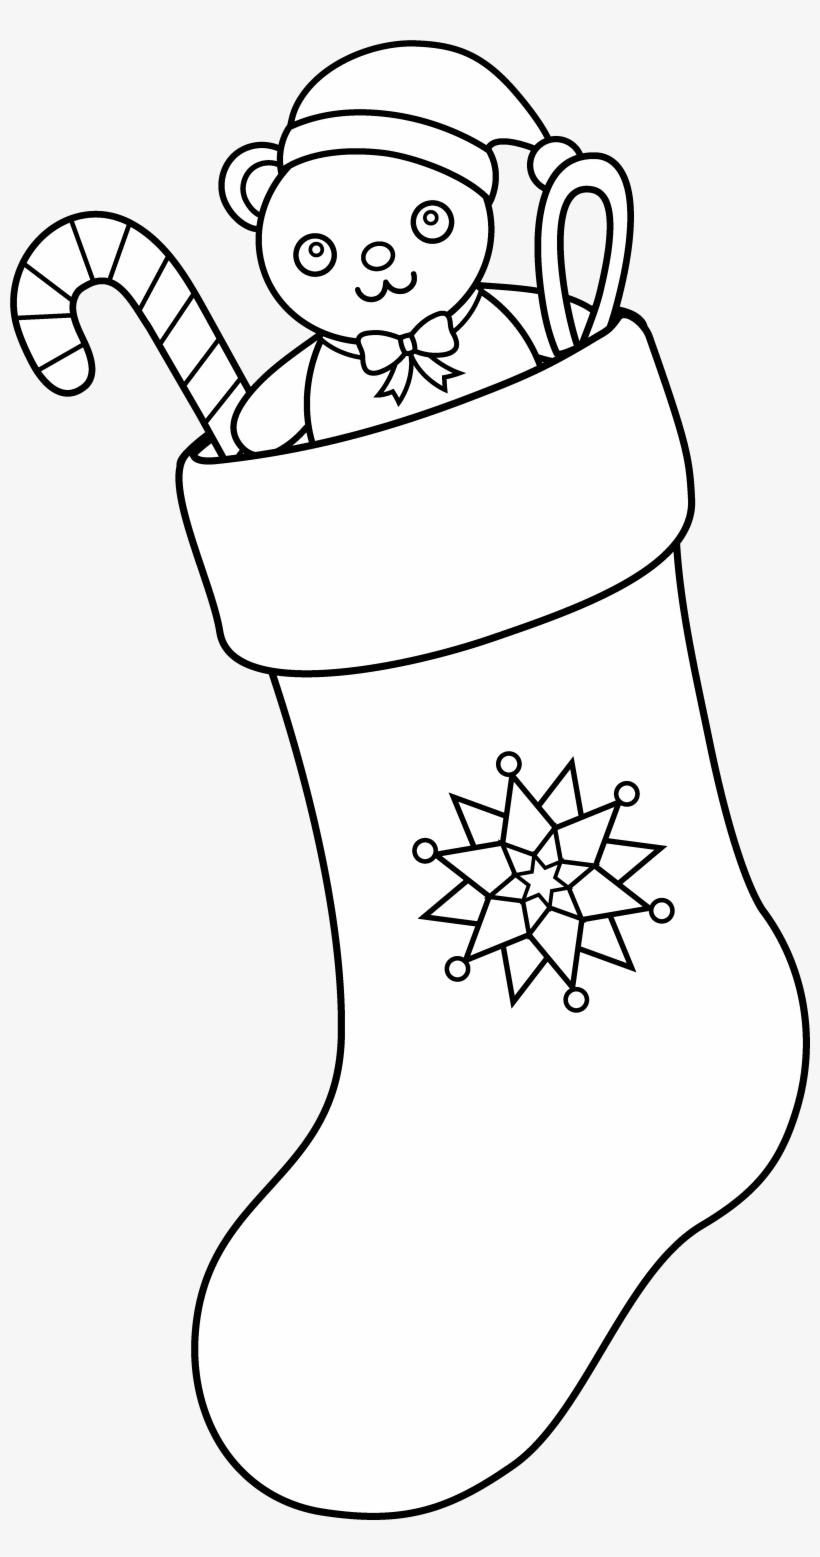 Svg Free Christmas Stocking Art Free Clip Coloring - Christmas Stocking Clipart Black And White Png, transparent png #2184070